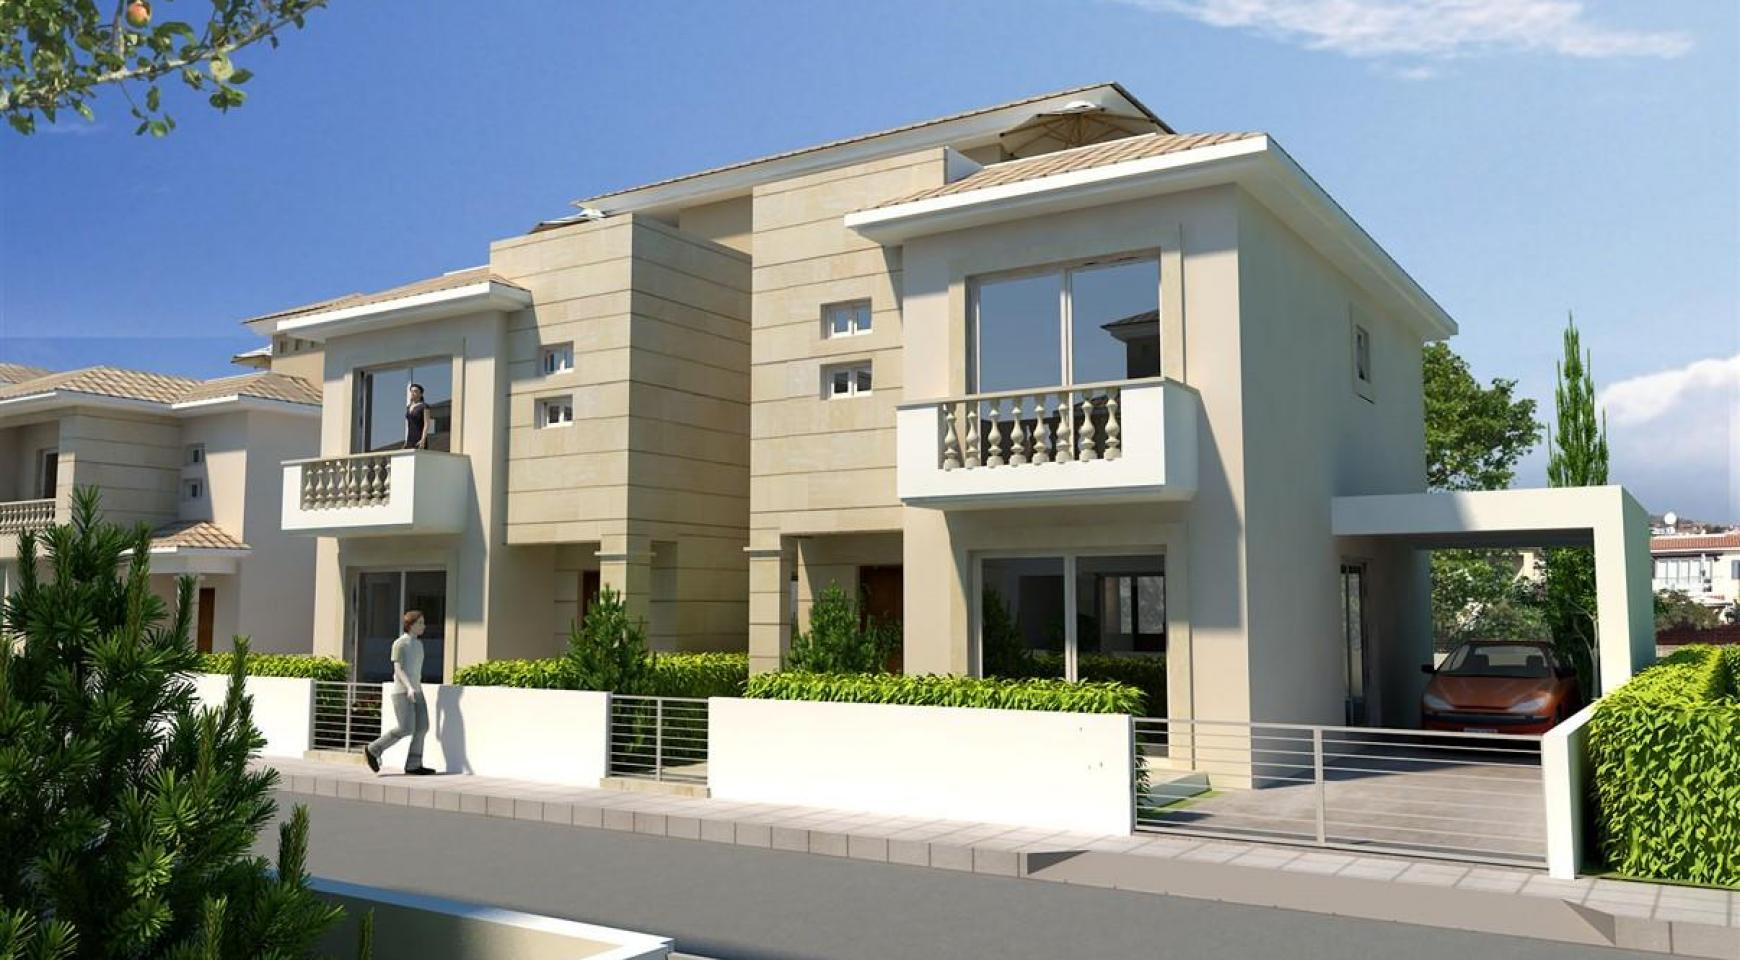 3 Bedroom Villa within a New Project - 24